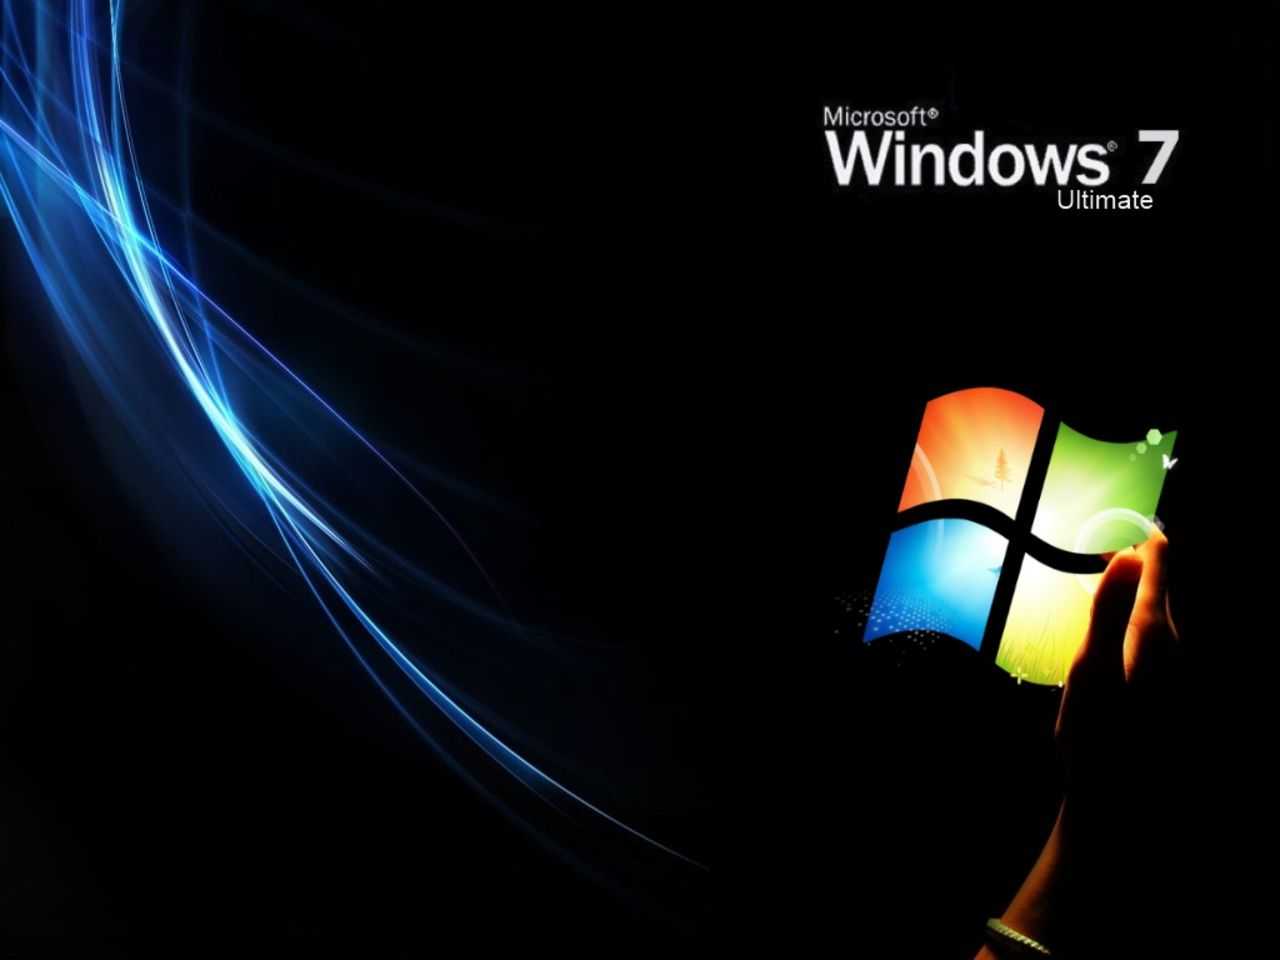 Windows 7 Wallpapers Download 45 Wallpapers Adorable